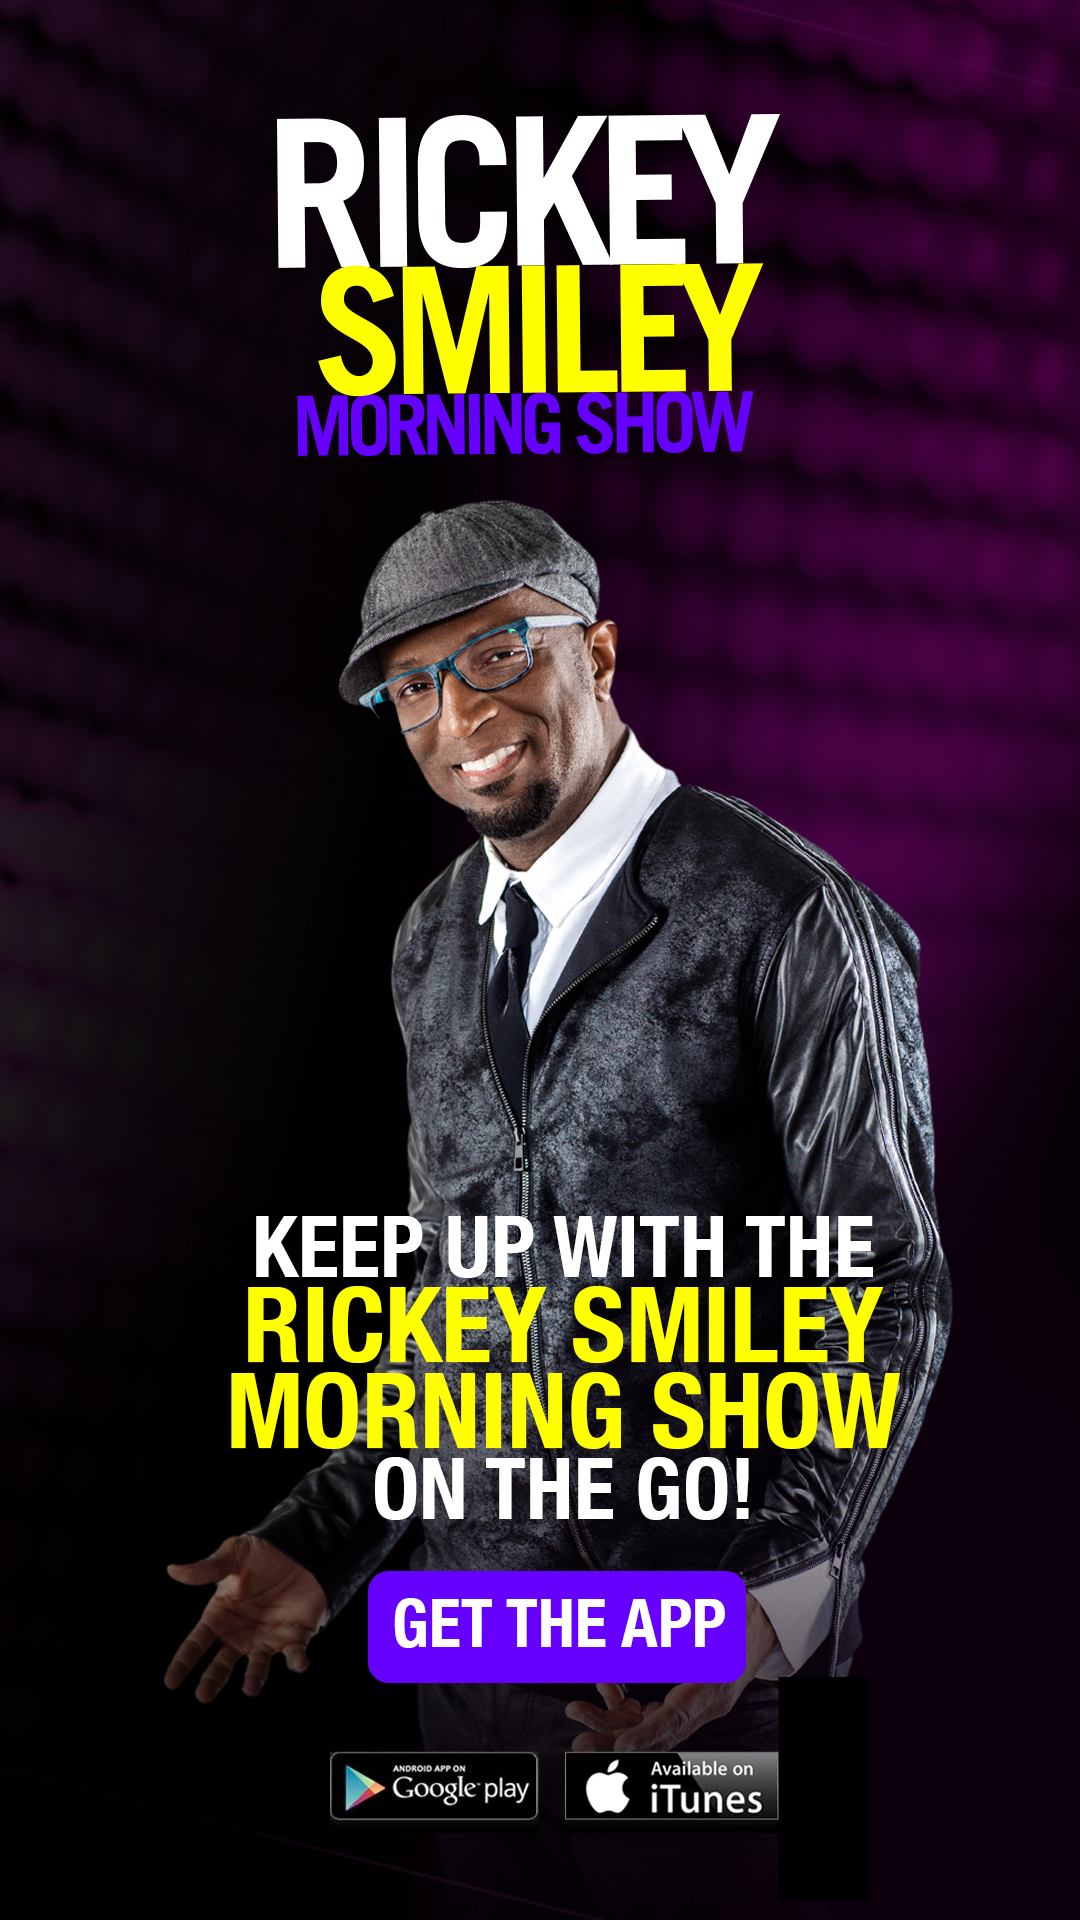 Rickey smiley stand up on bet 13.26 betting on red